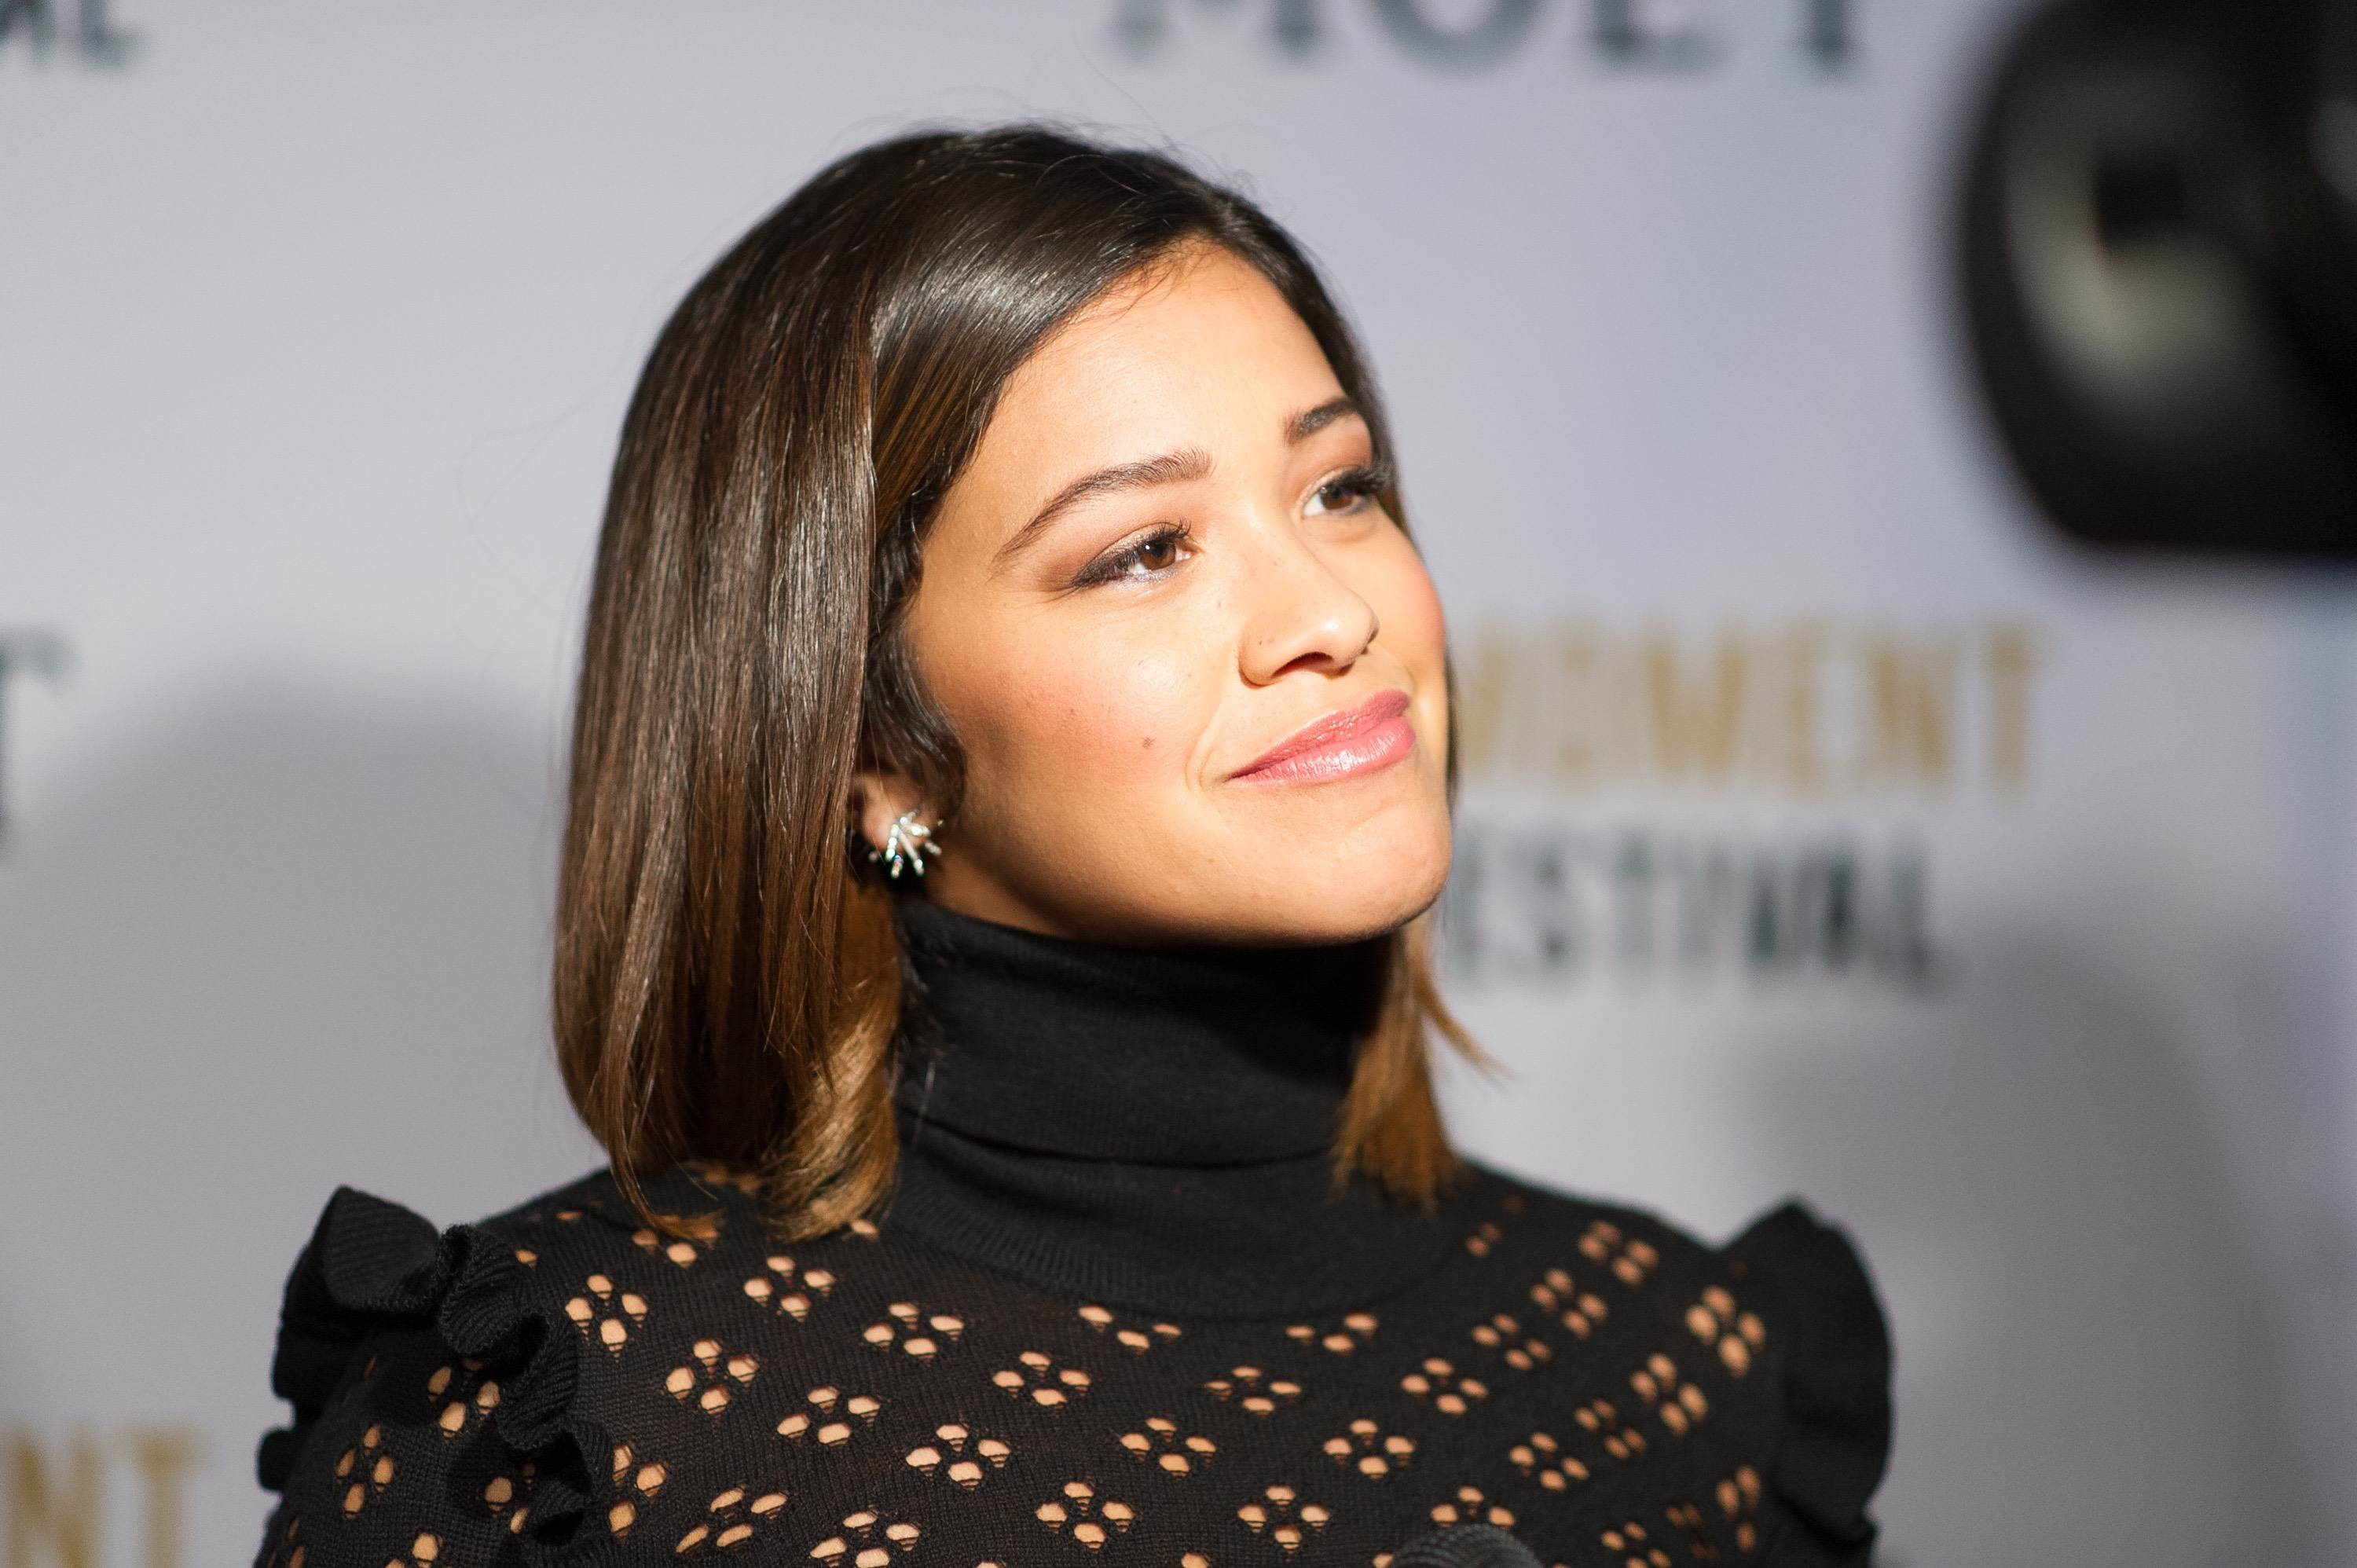 Gina Rodriguez Let it Slip That 'Jane the Virgin's Season 5 May Be Its Last